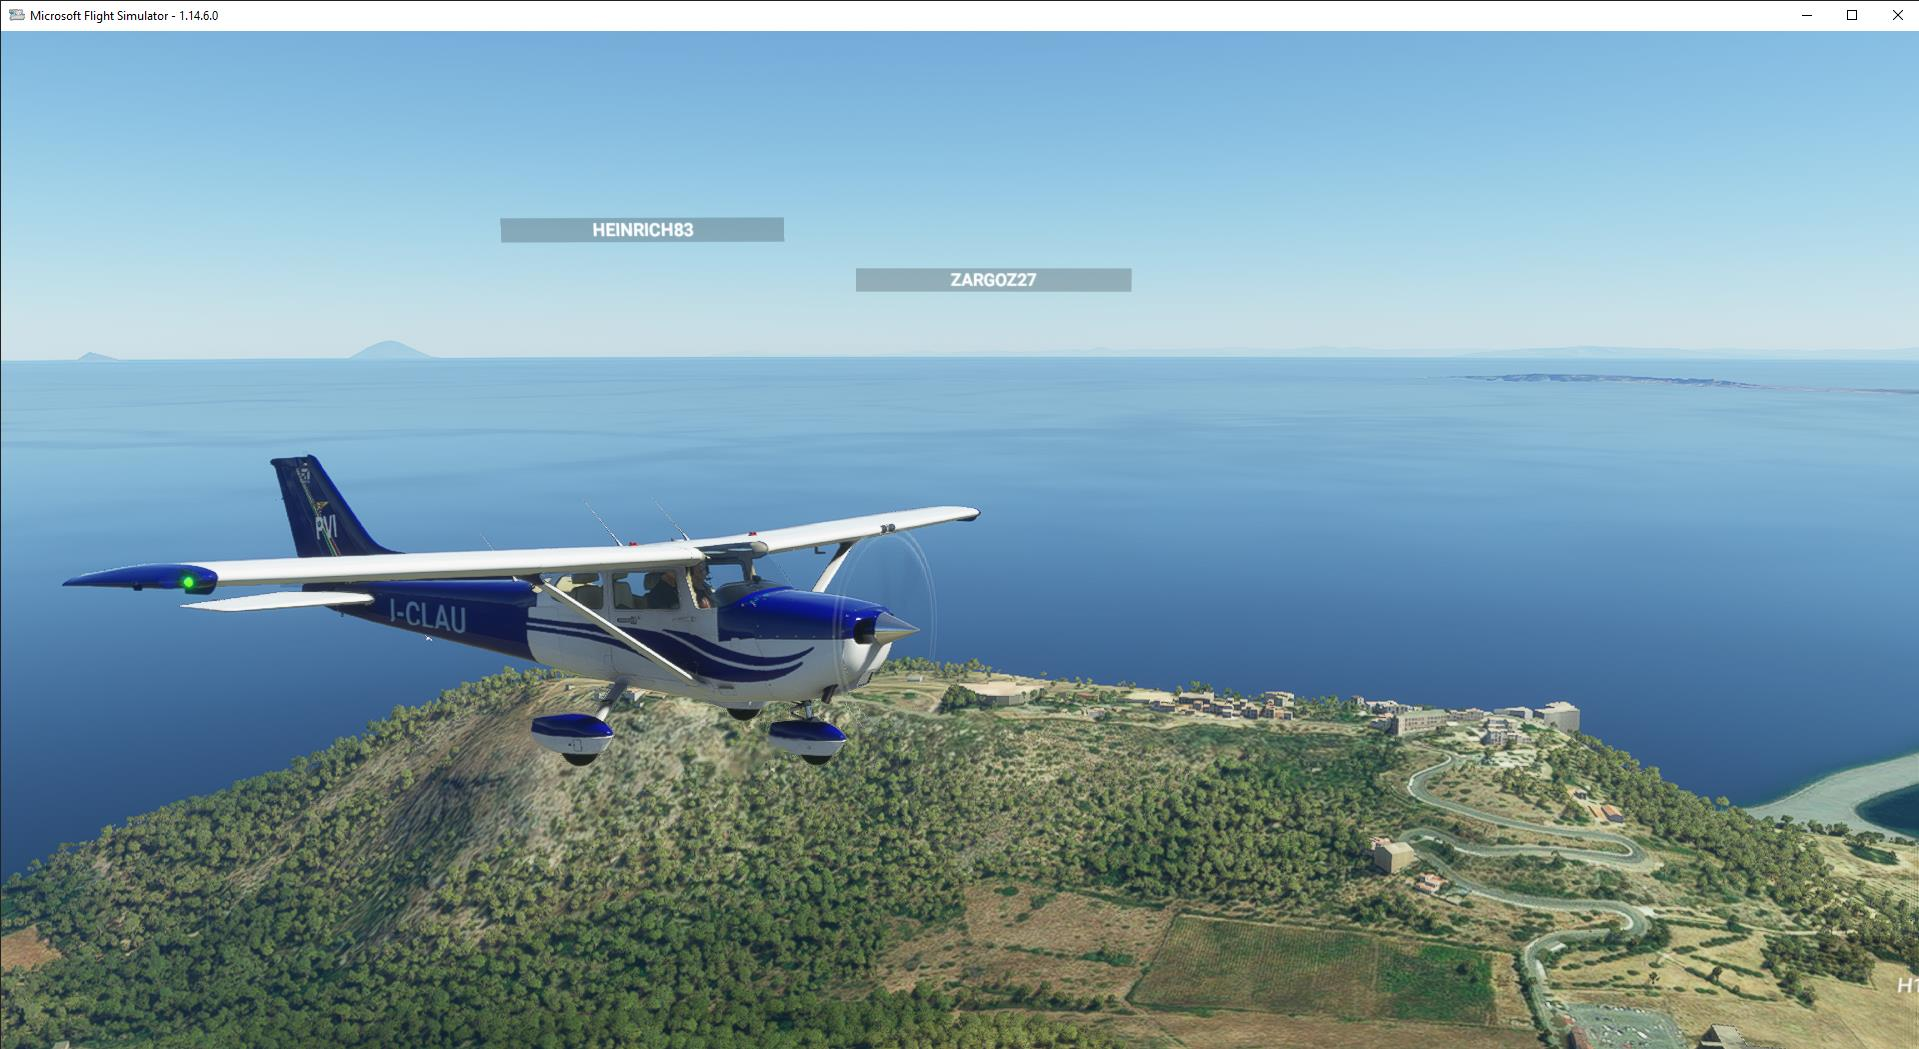 https://vivendobyte.blob.core.windows.net/59034/Microsoft Flight Simulator - 1.14.6.0 05_04_2021 21_57_35.jpg